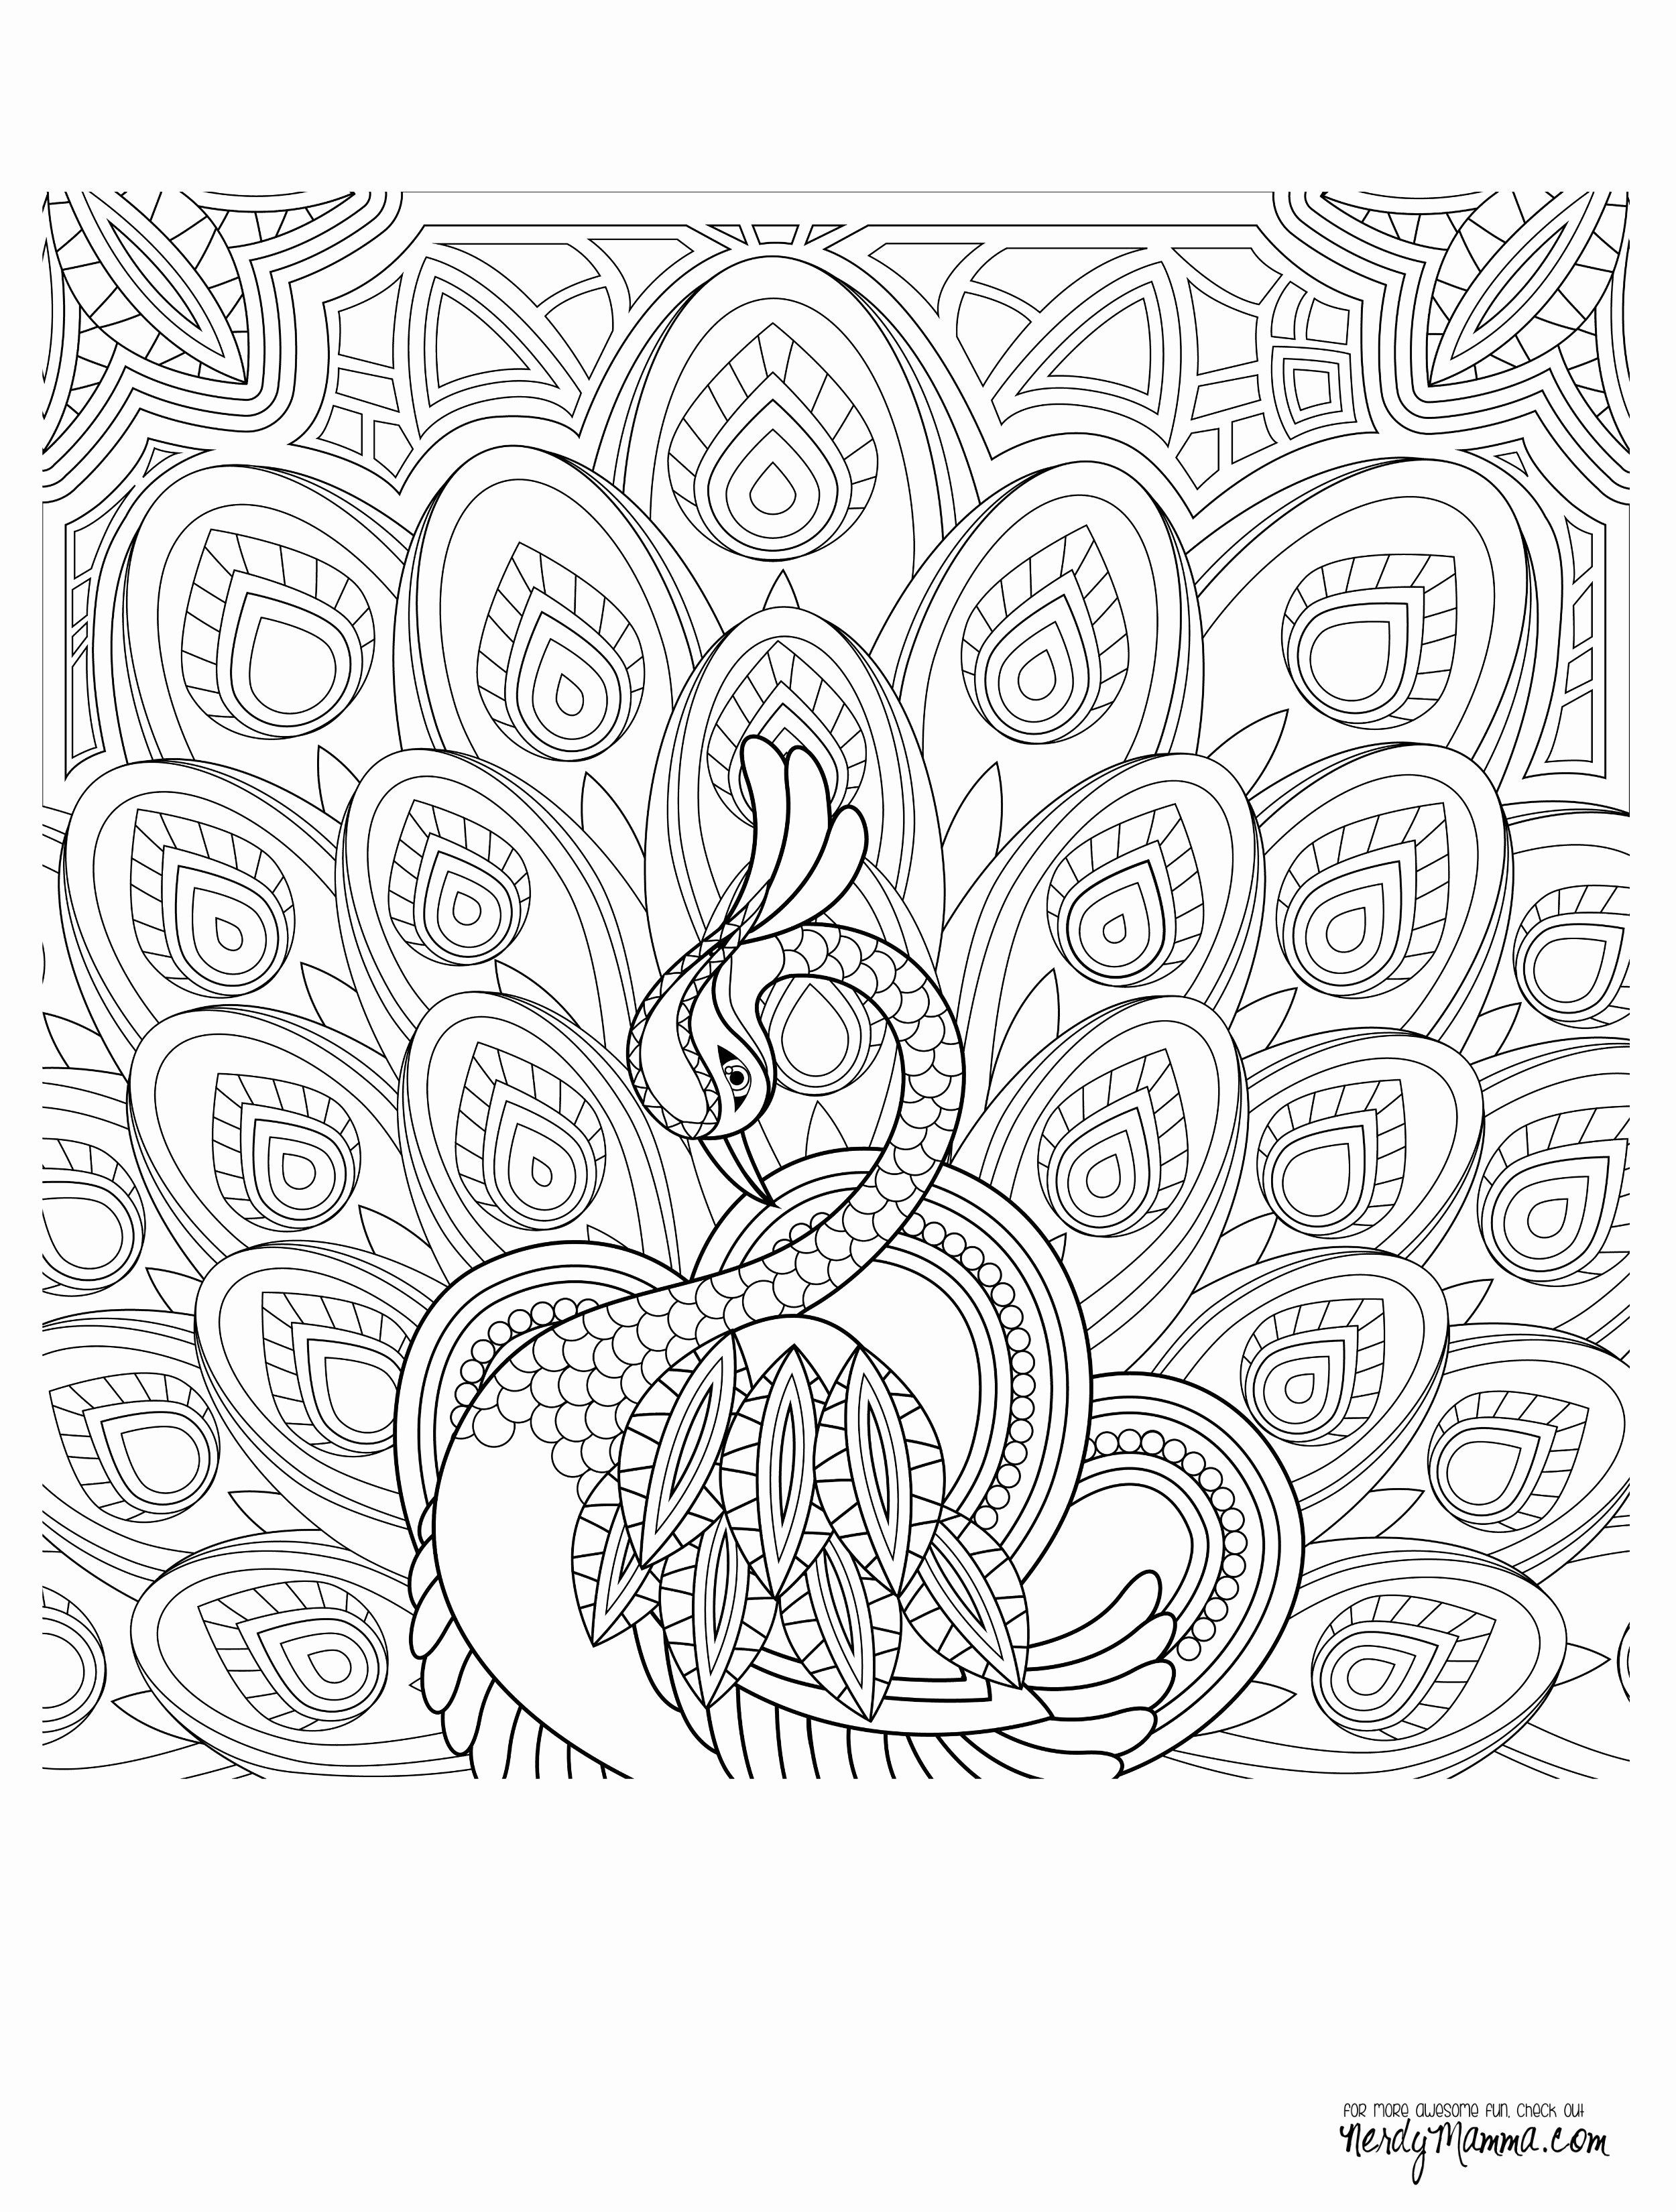 big mandala coloring pages Download-Free Printable Coloring Pages For Adults Best Awesome Coloring Page For Adult Od Kids Simple Floral Heart With 17-d